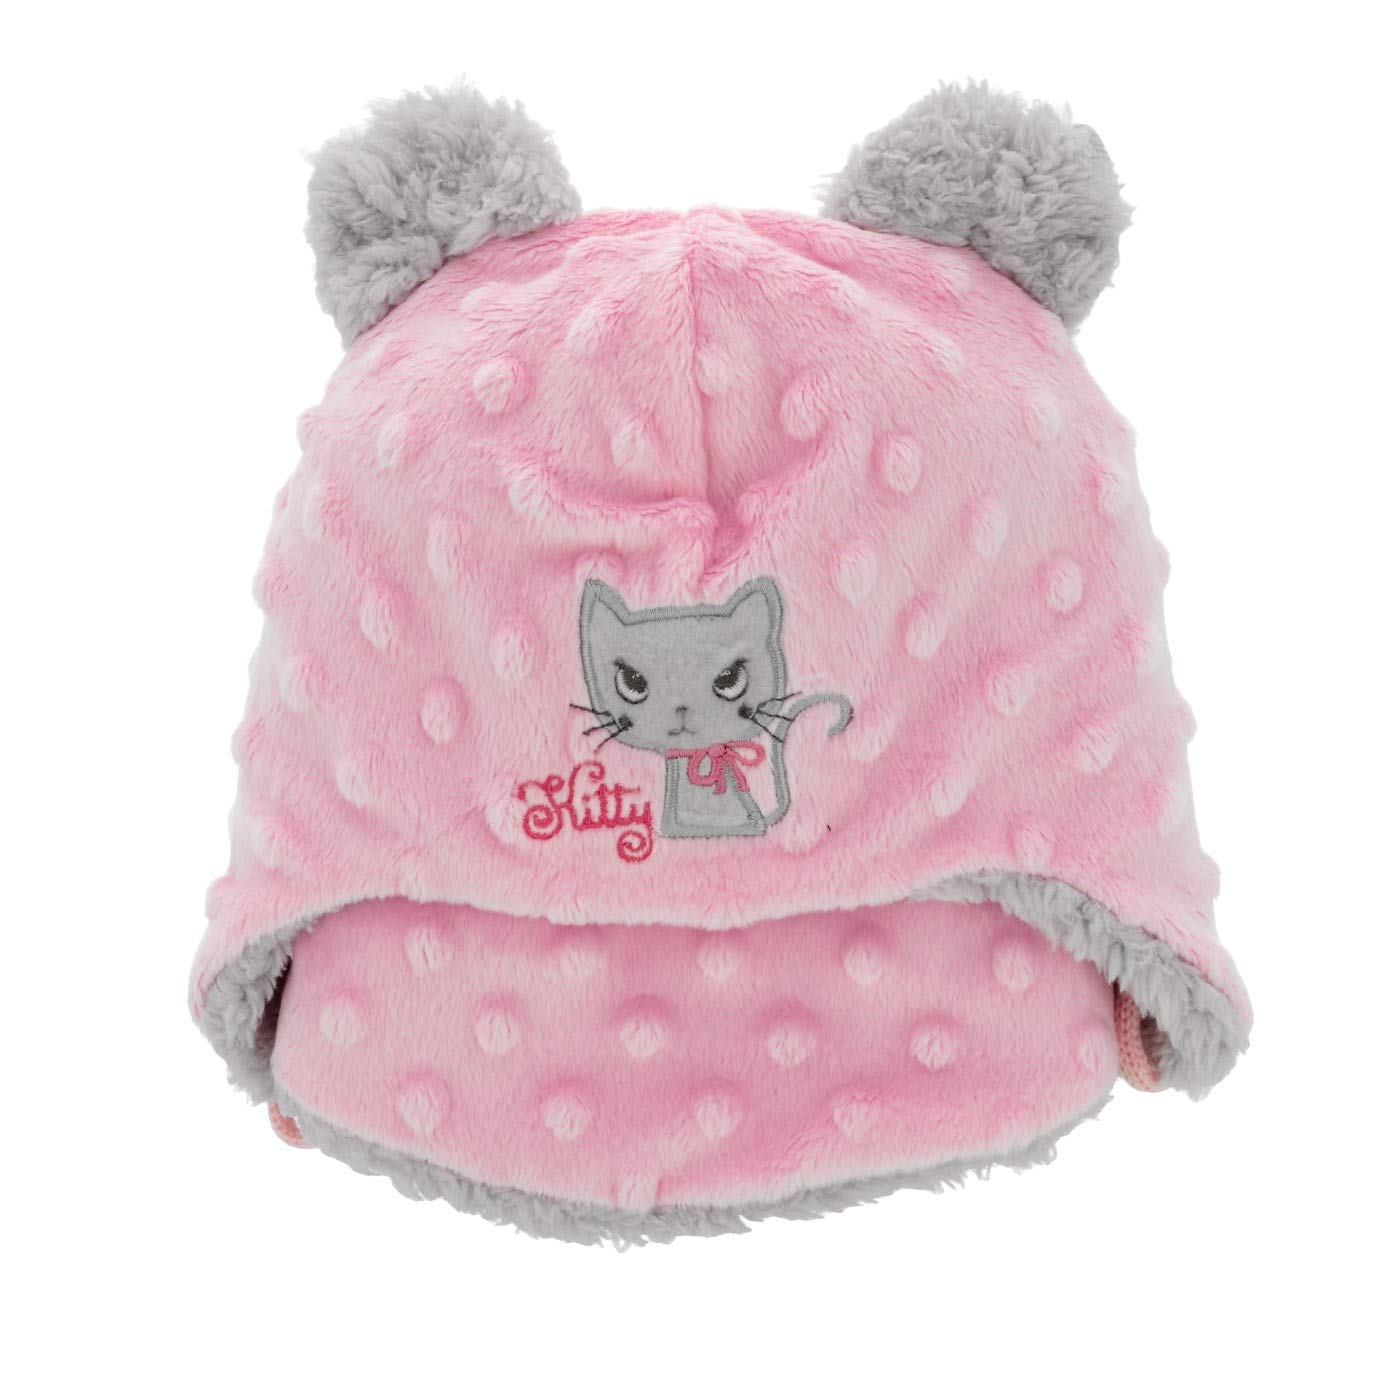 Baby Girl Hat /& Scarf Infant Girls Set Winter Size 6-24 mths 2-3 Years